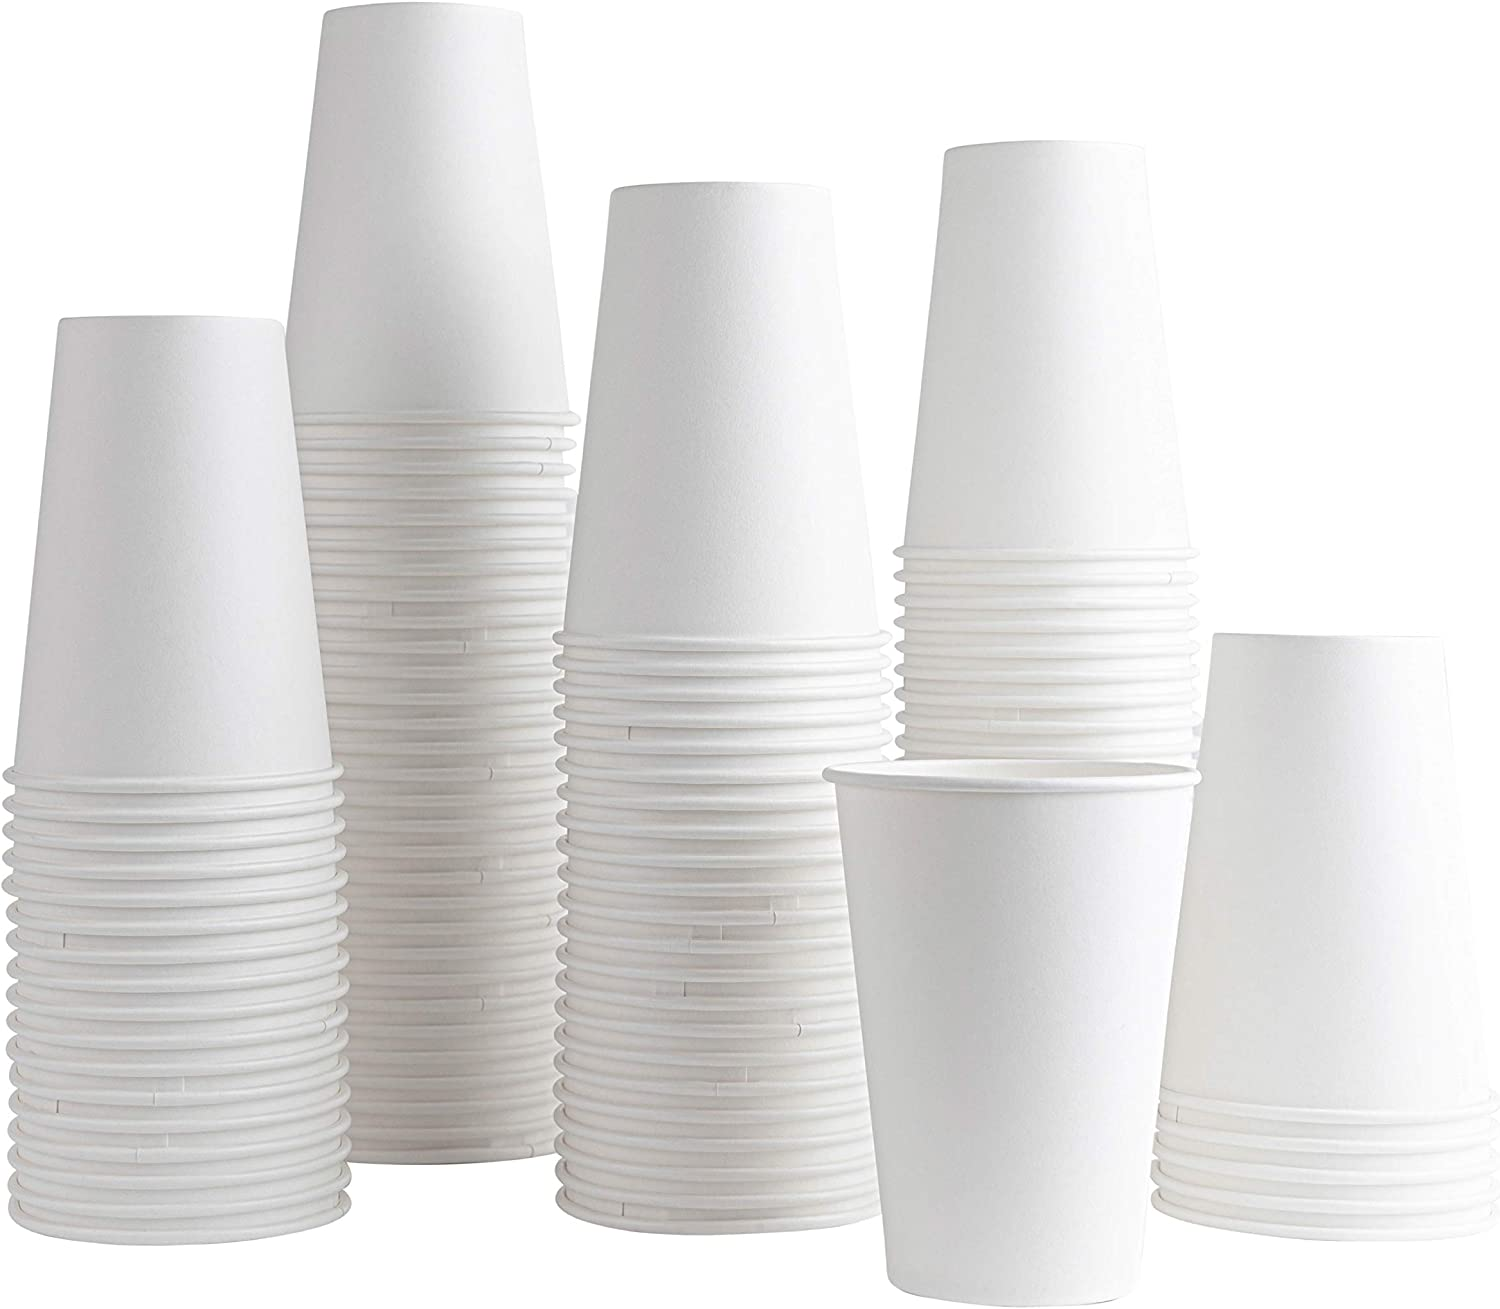 [100 Pack] 8 ounce Paper Hot Cups Disposable Coffee Cup for Bathroom, Espresso, Mouthwash, Cold, or Hot Drinks, Tea, Coffee, Hot choclate